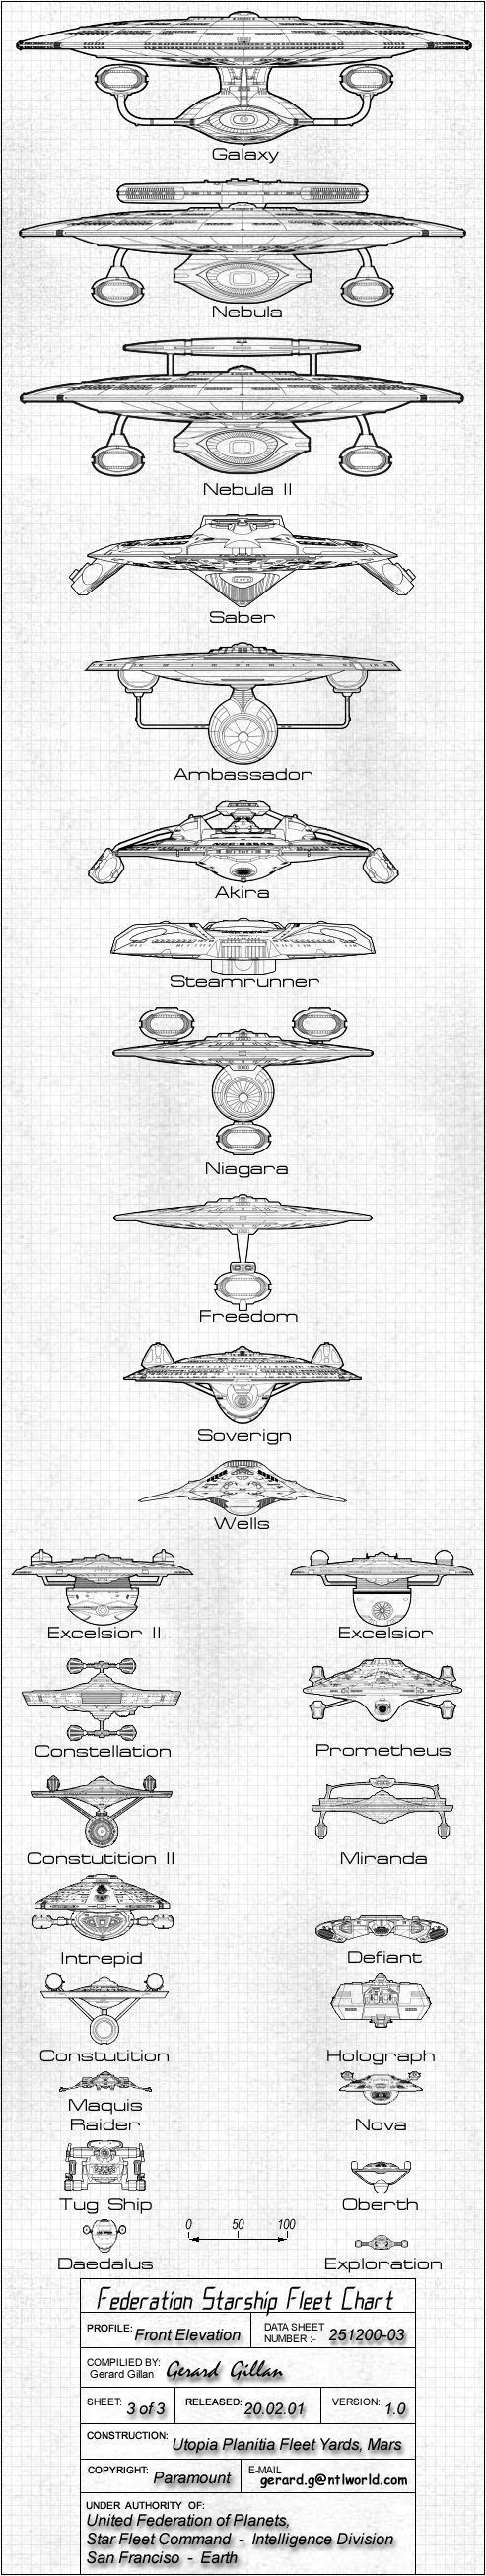 Federation Starship Fleet Chart - Front Elevation